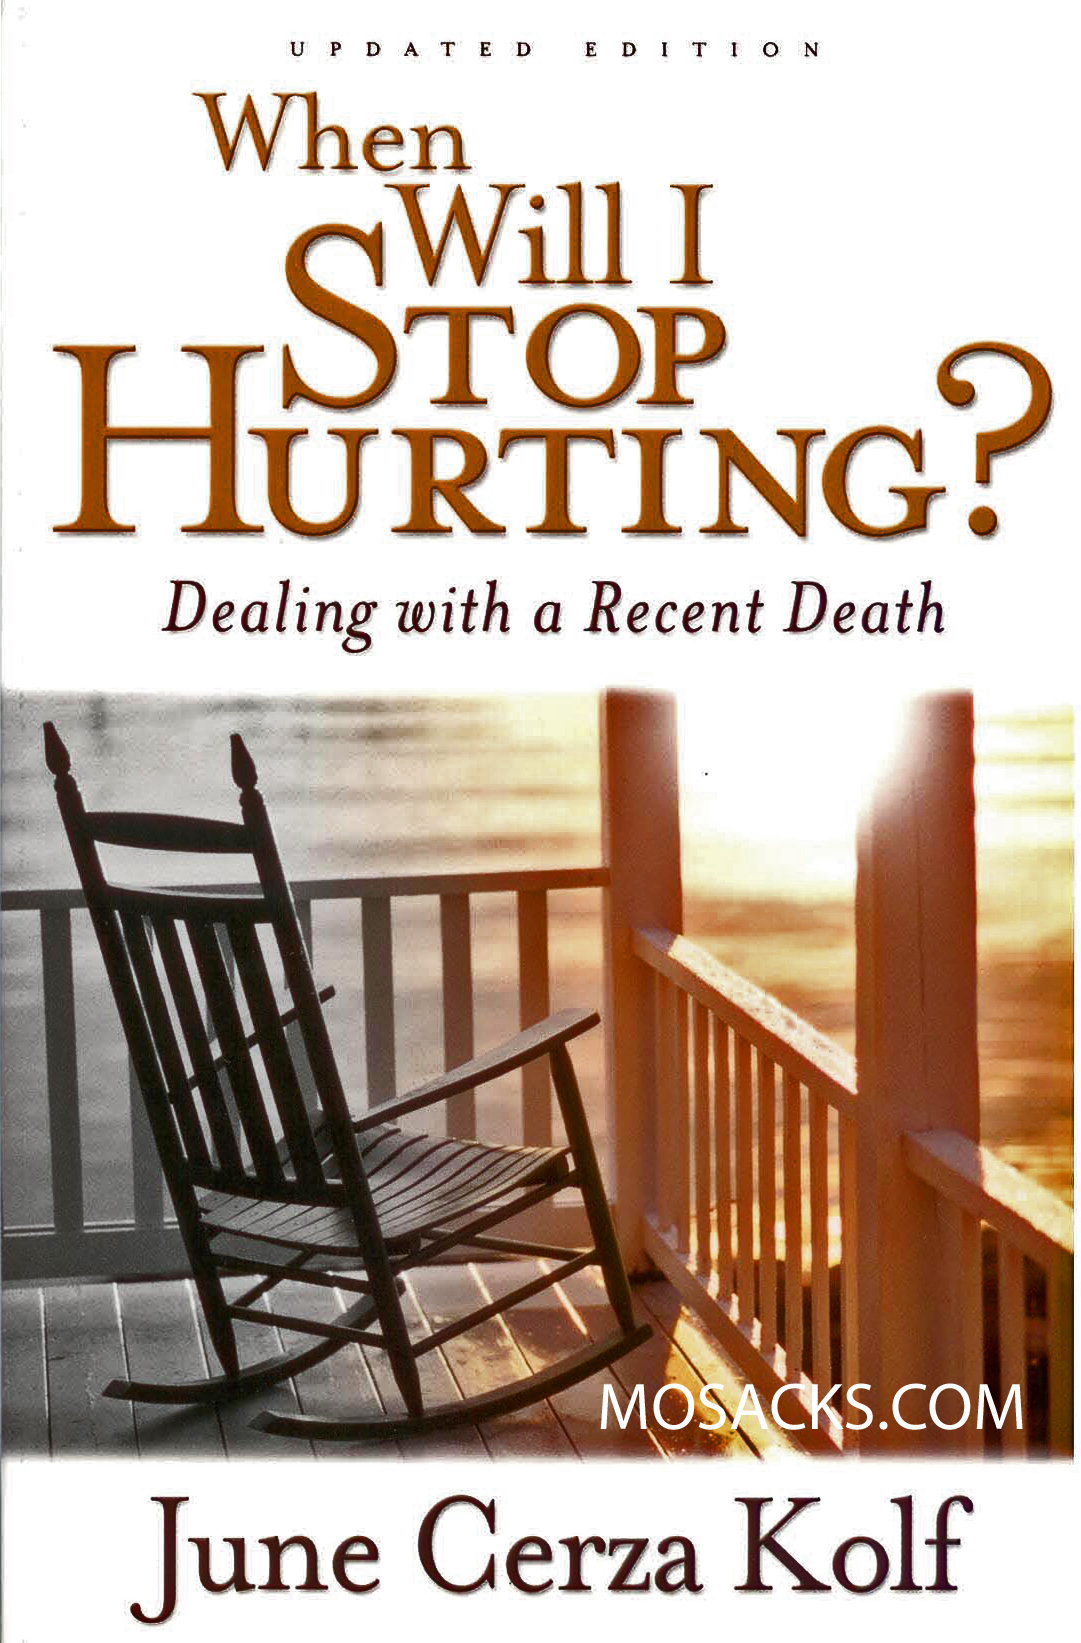 When Will I Stop Hurting? by June Cerza Kolf